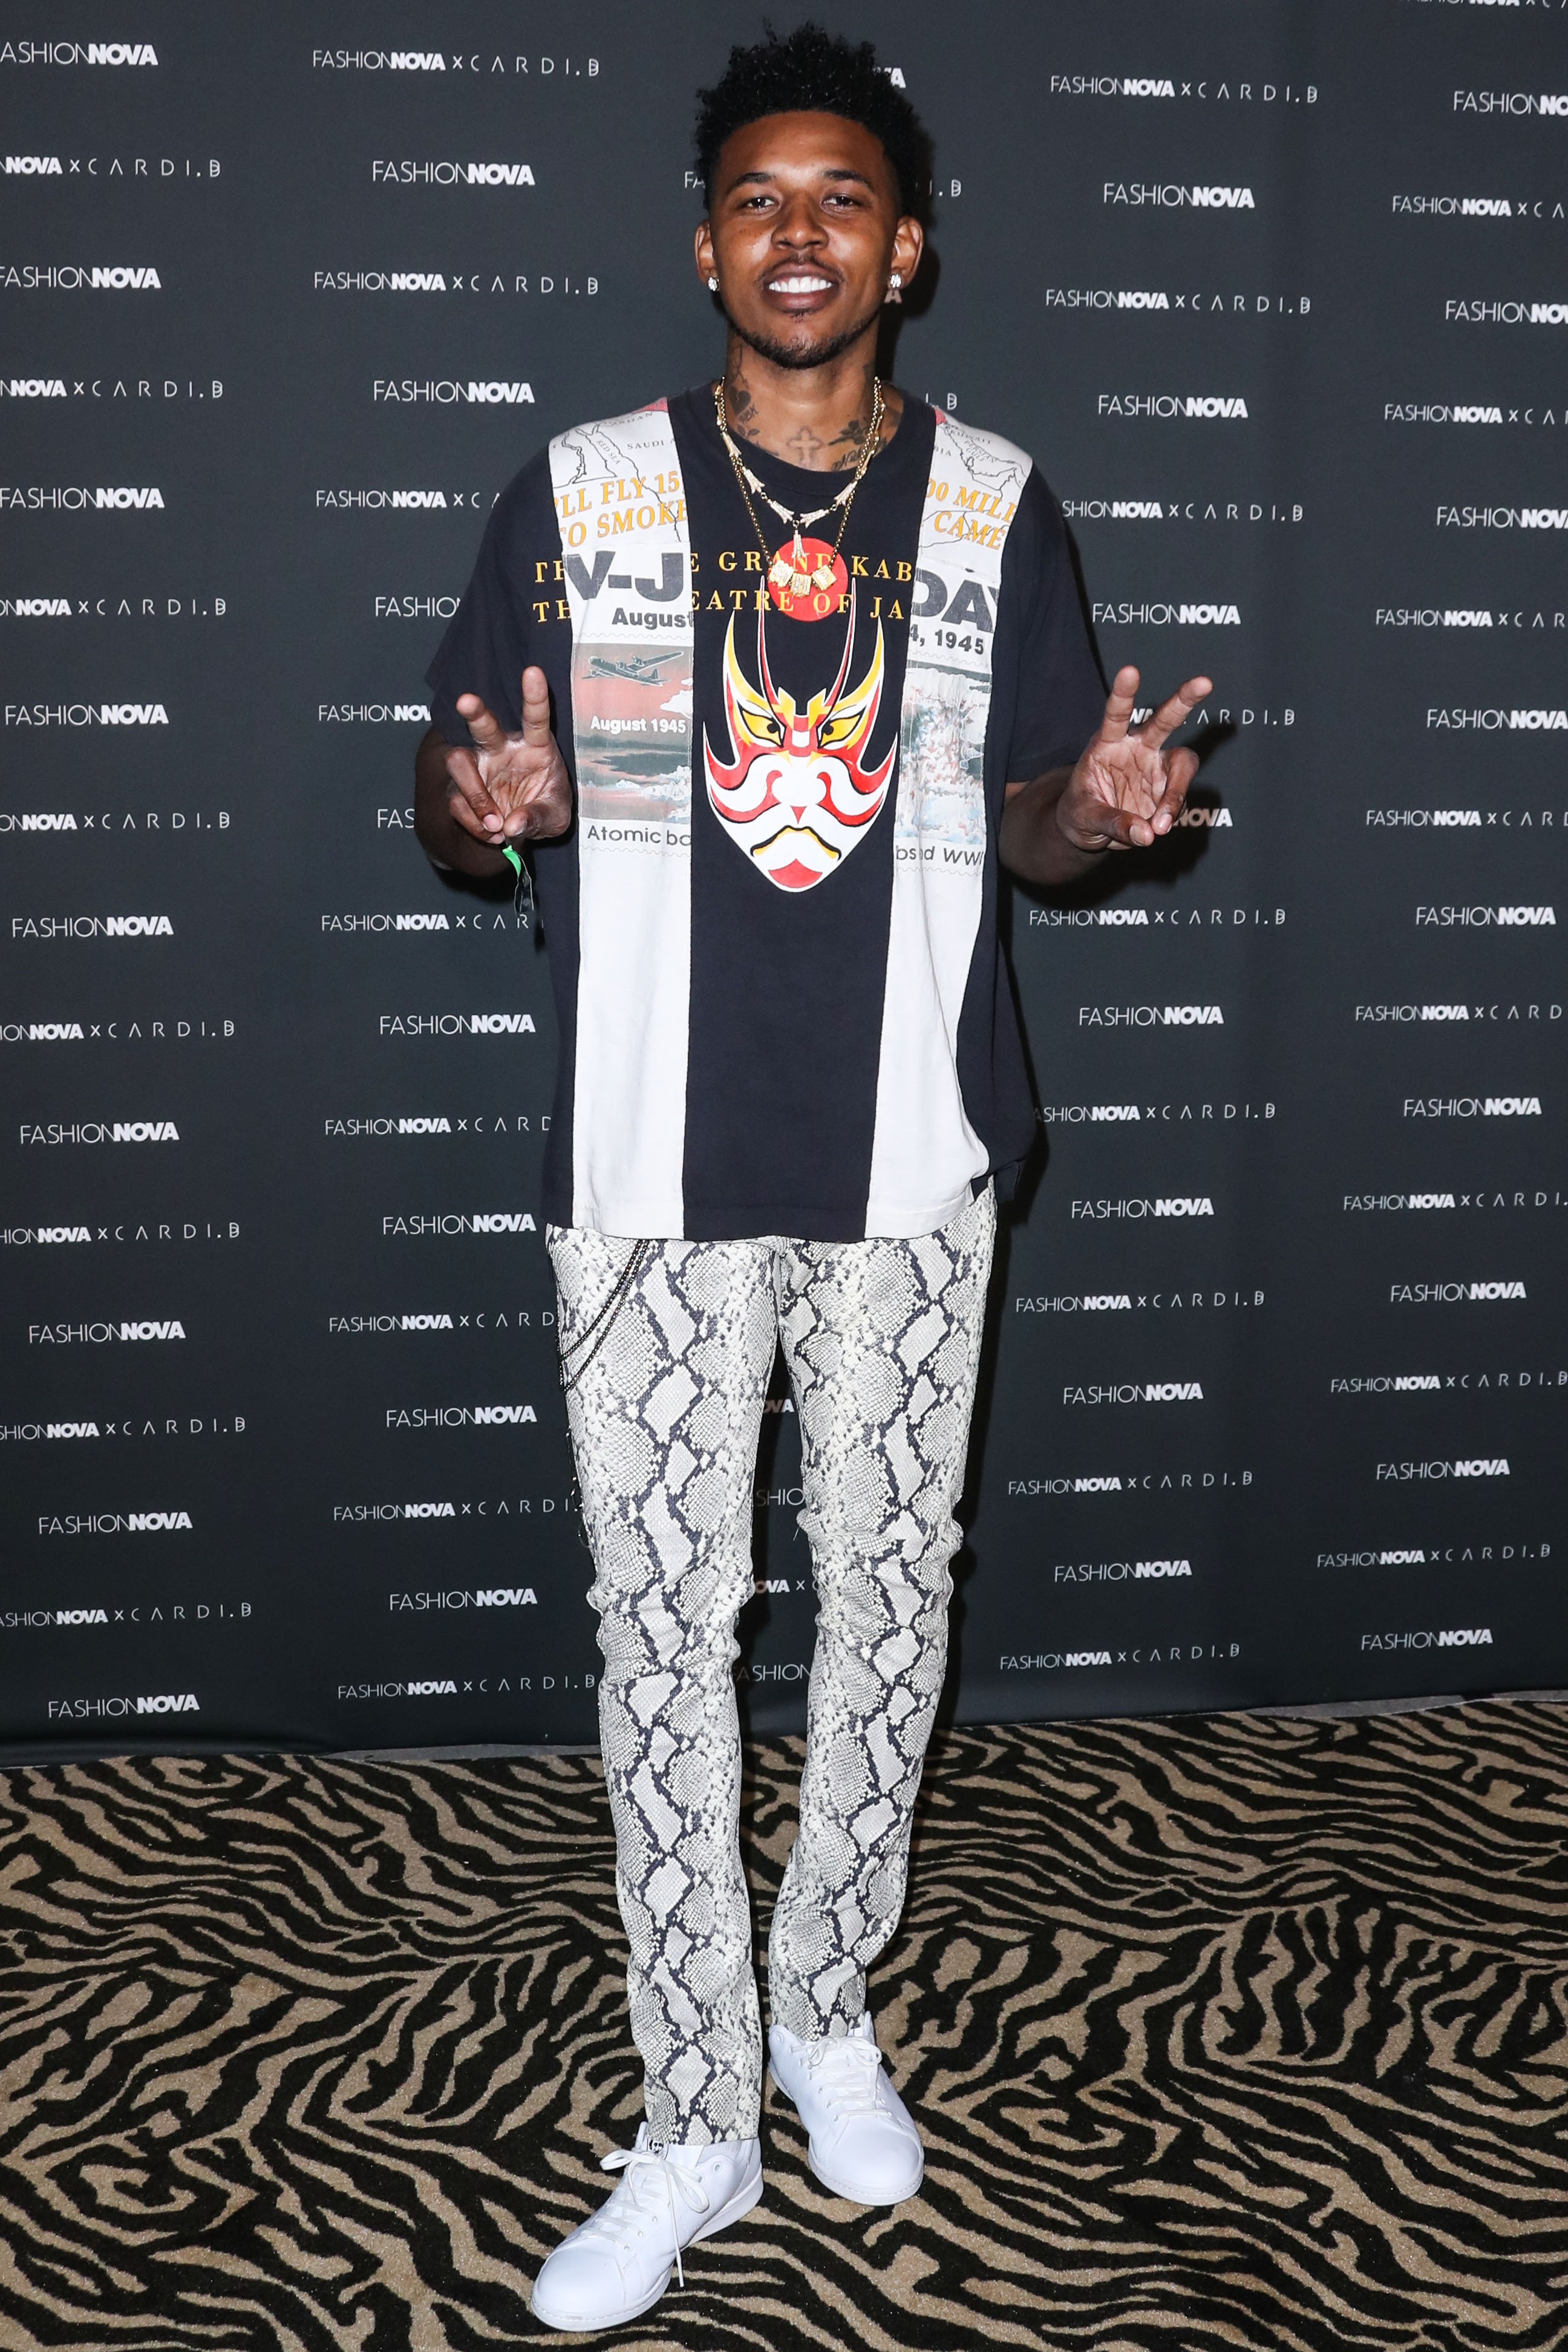 Nick Young at The Fashion Nova x Cardi B Collection Launch Event